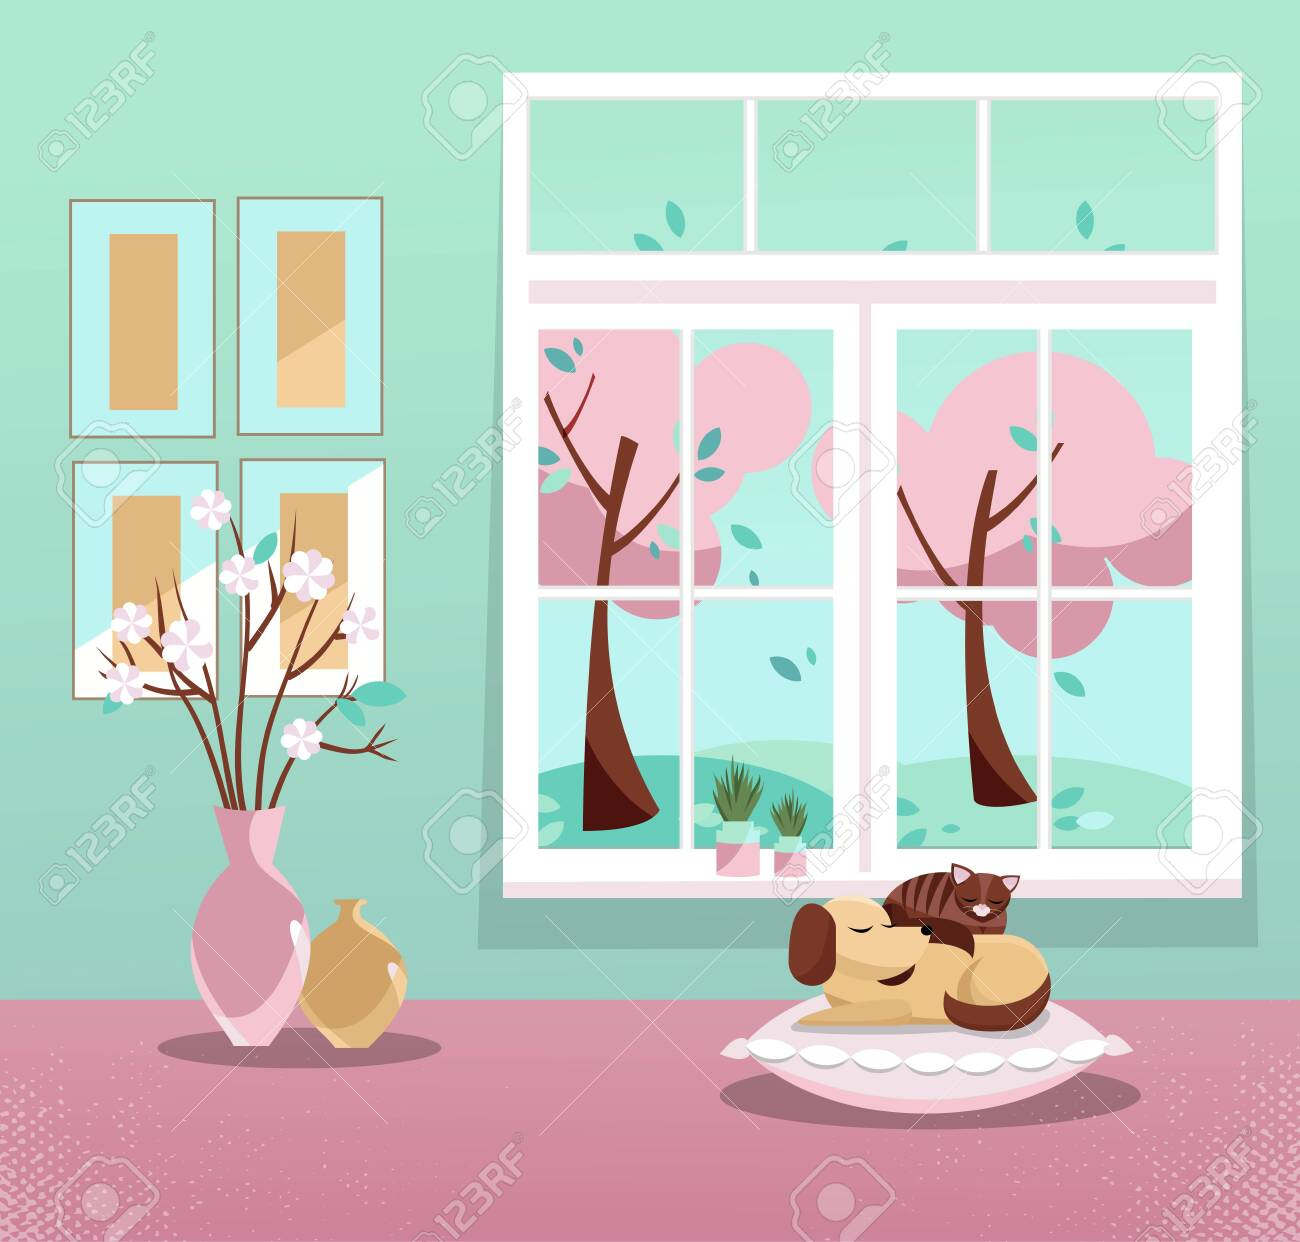 Window with a view of pink trees in blossom and flying leaves. Springinterior with sleeping cat and dog, vases, pictures on mint wallpaper. Sweet home. Cozy interior. Flat cartoon vector illustration. - 122495870